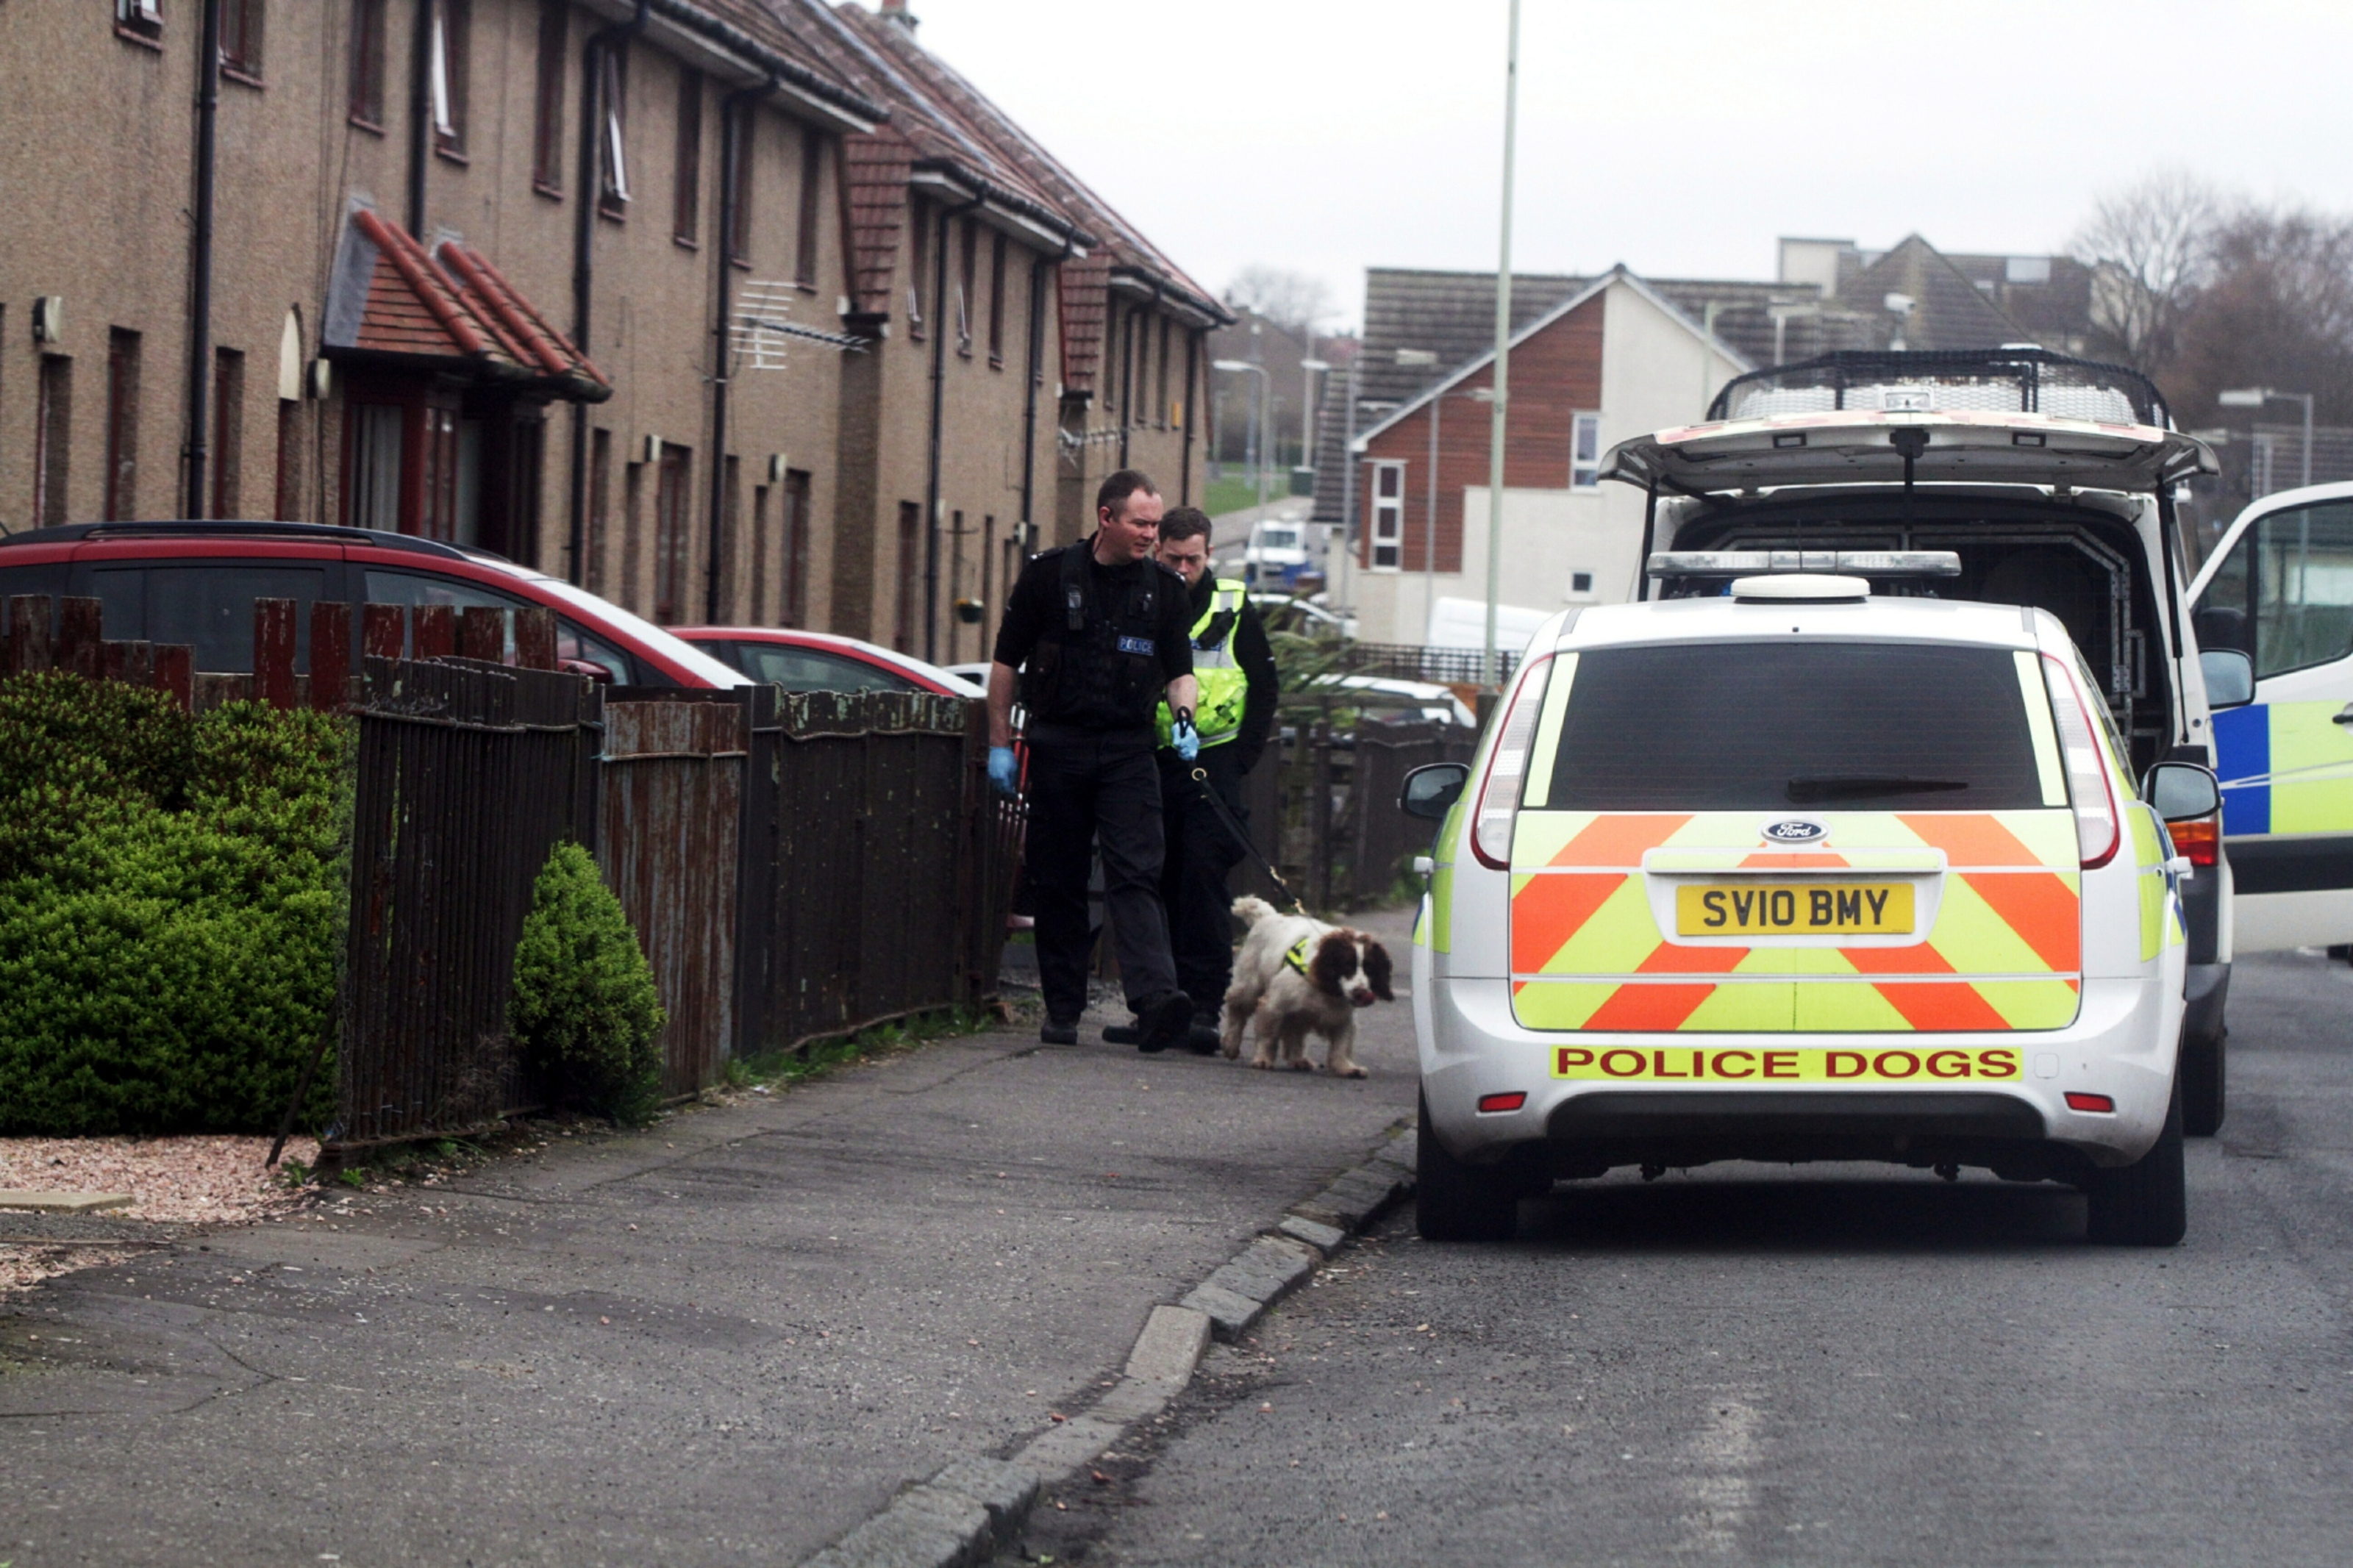 Officers and a police dog at Beauly Avenue for a drugs search warrant.